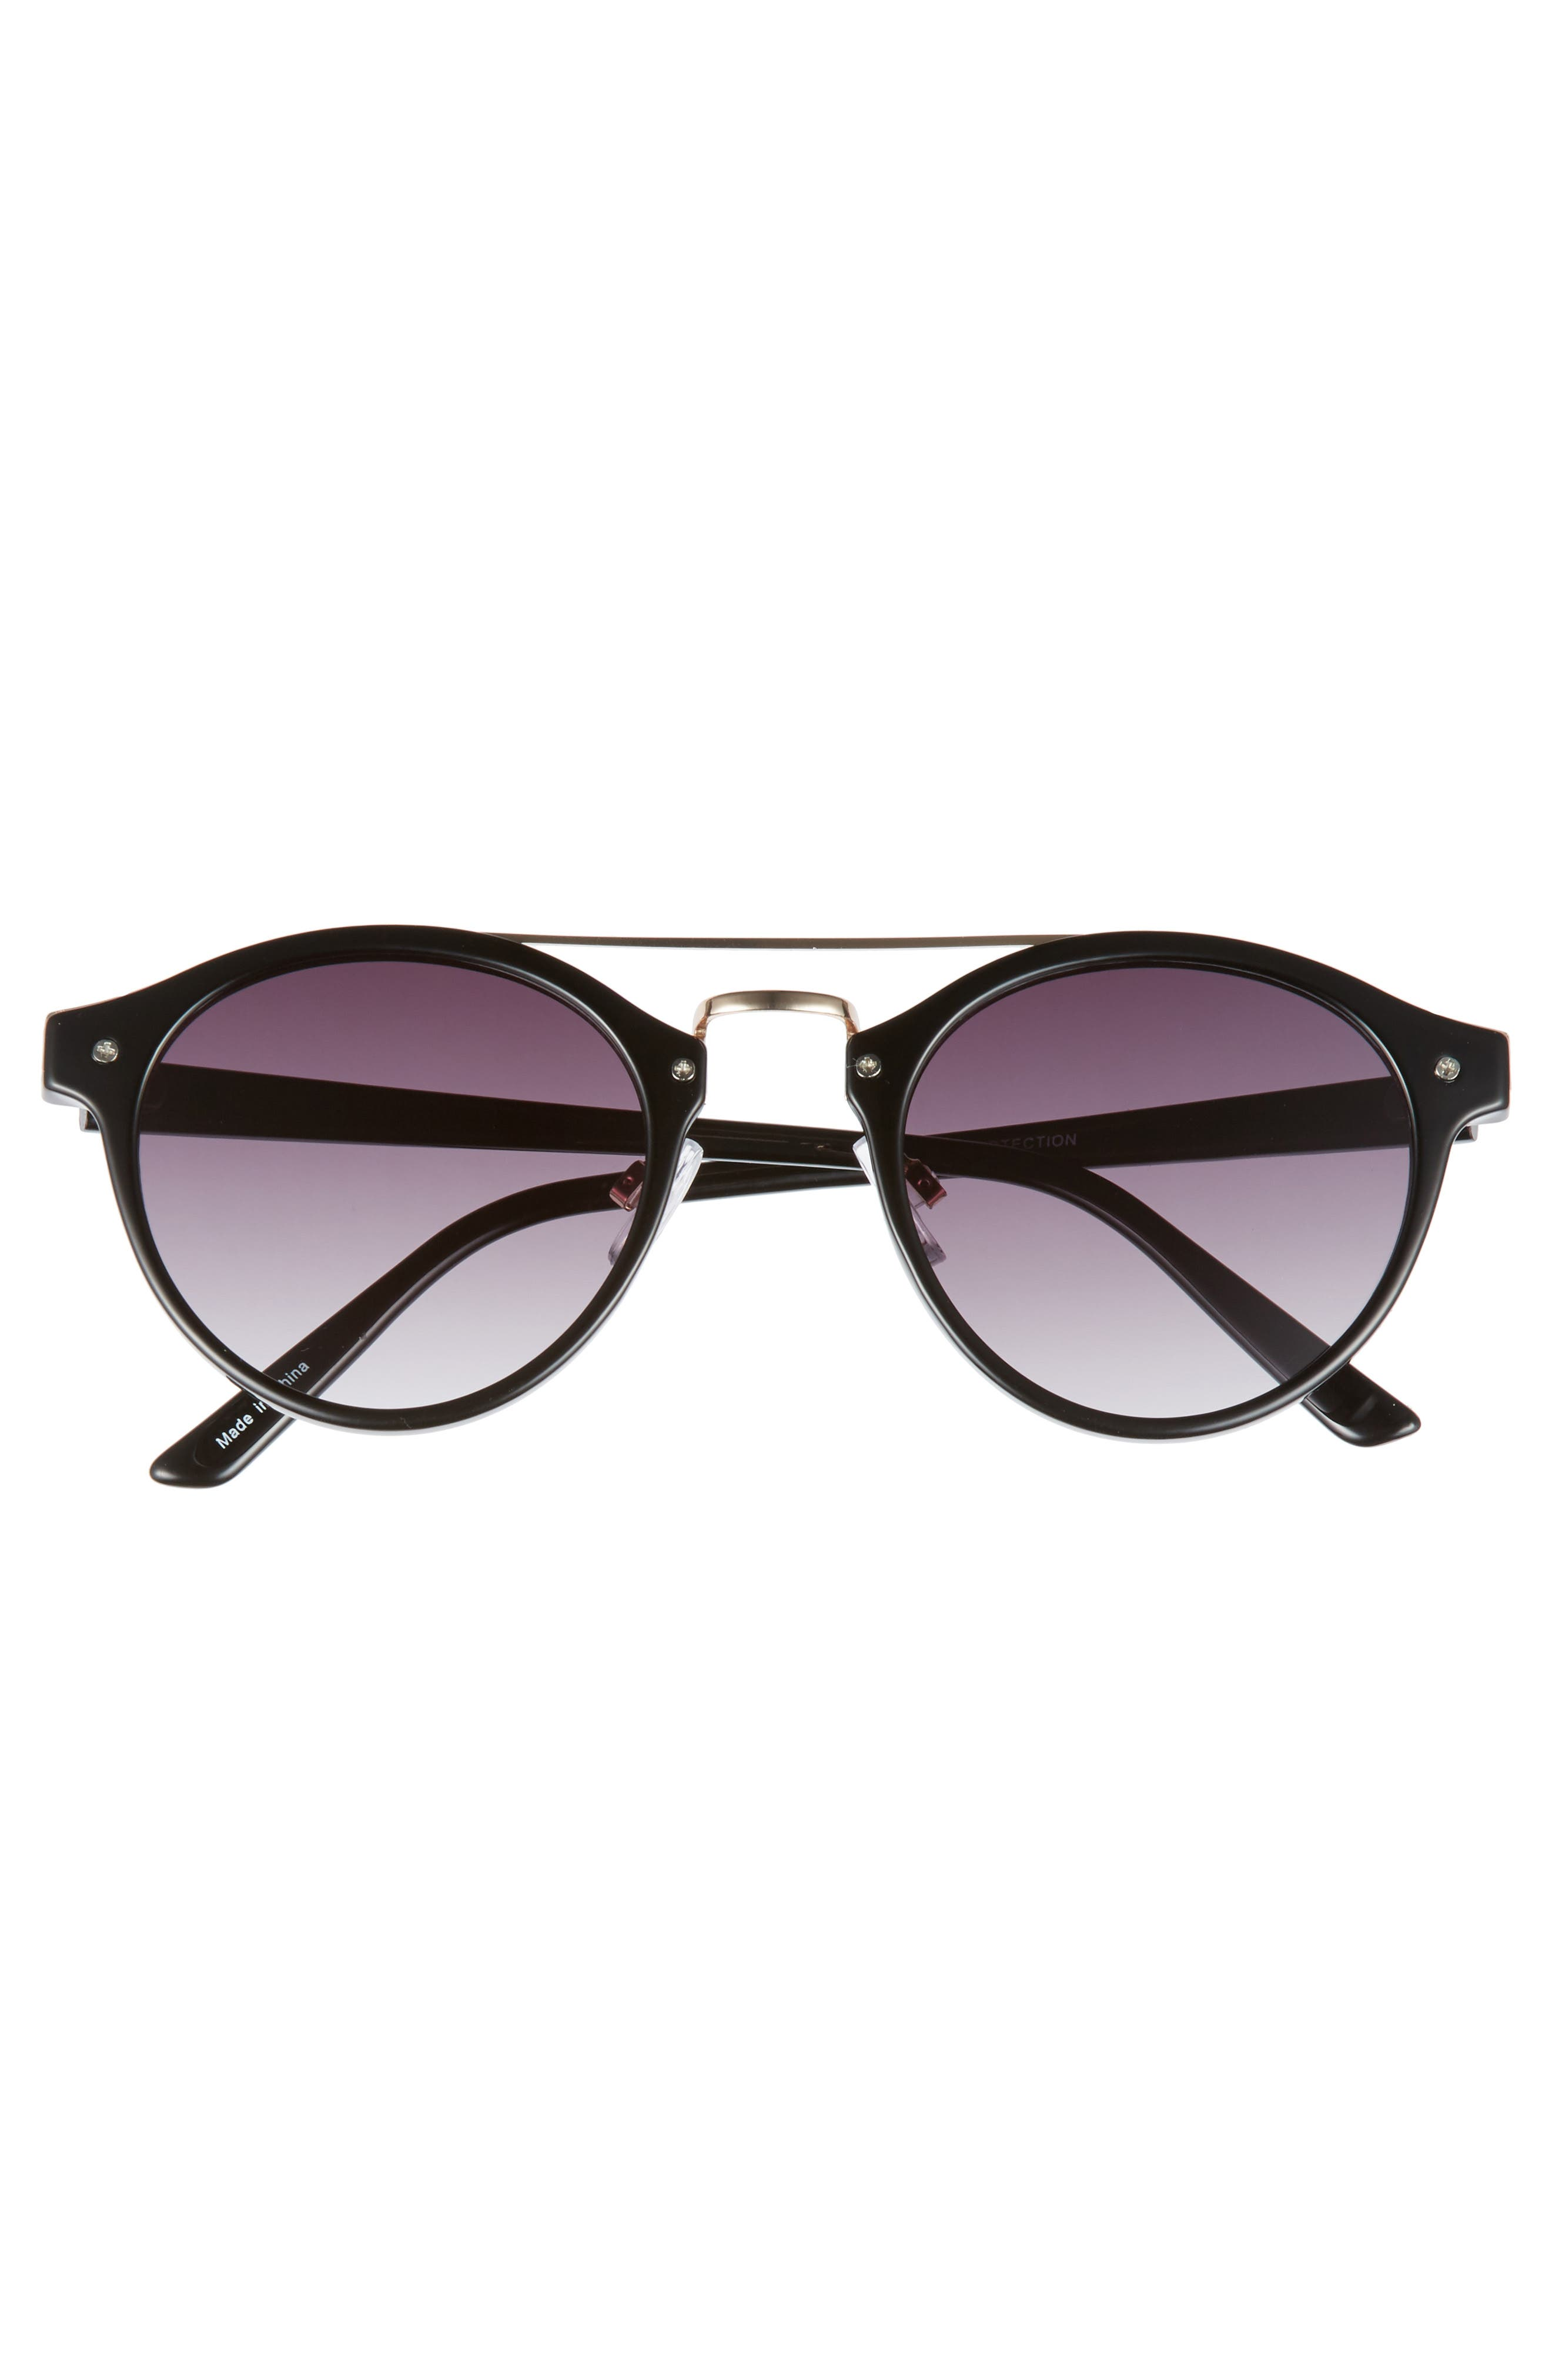 45mm Round Sunglasses,                             Alternate thumbnail 3, color,                             001